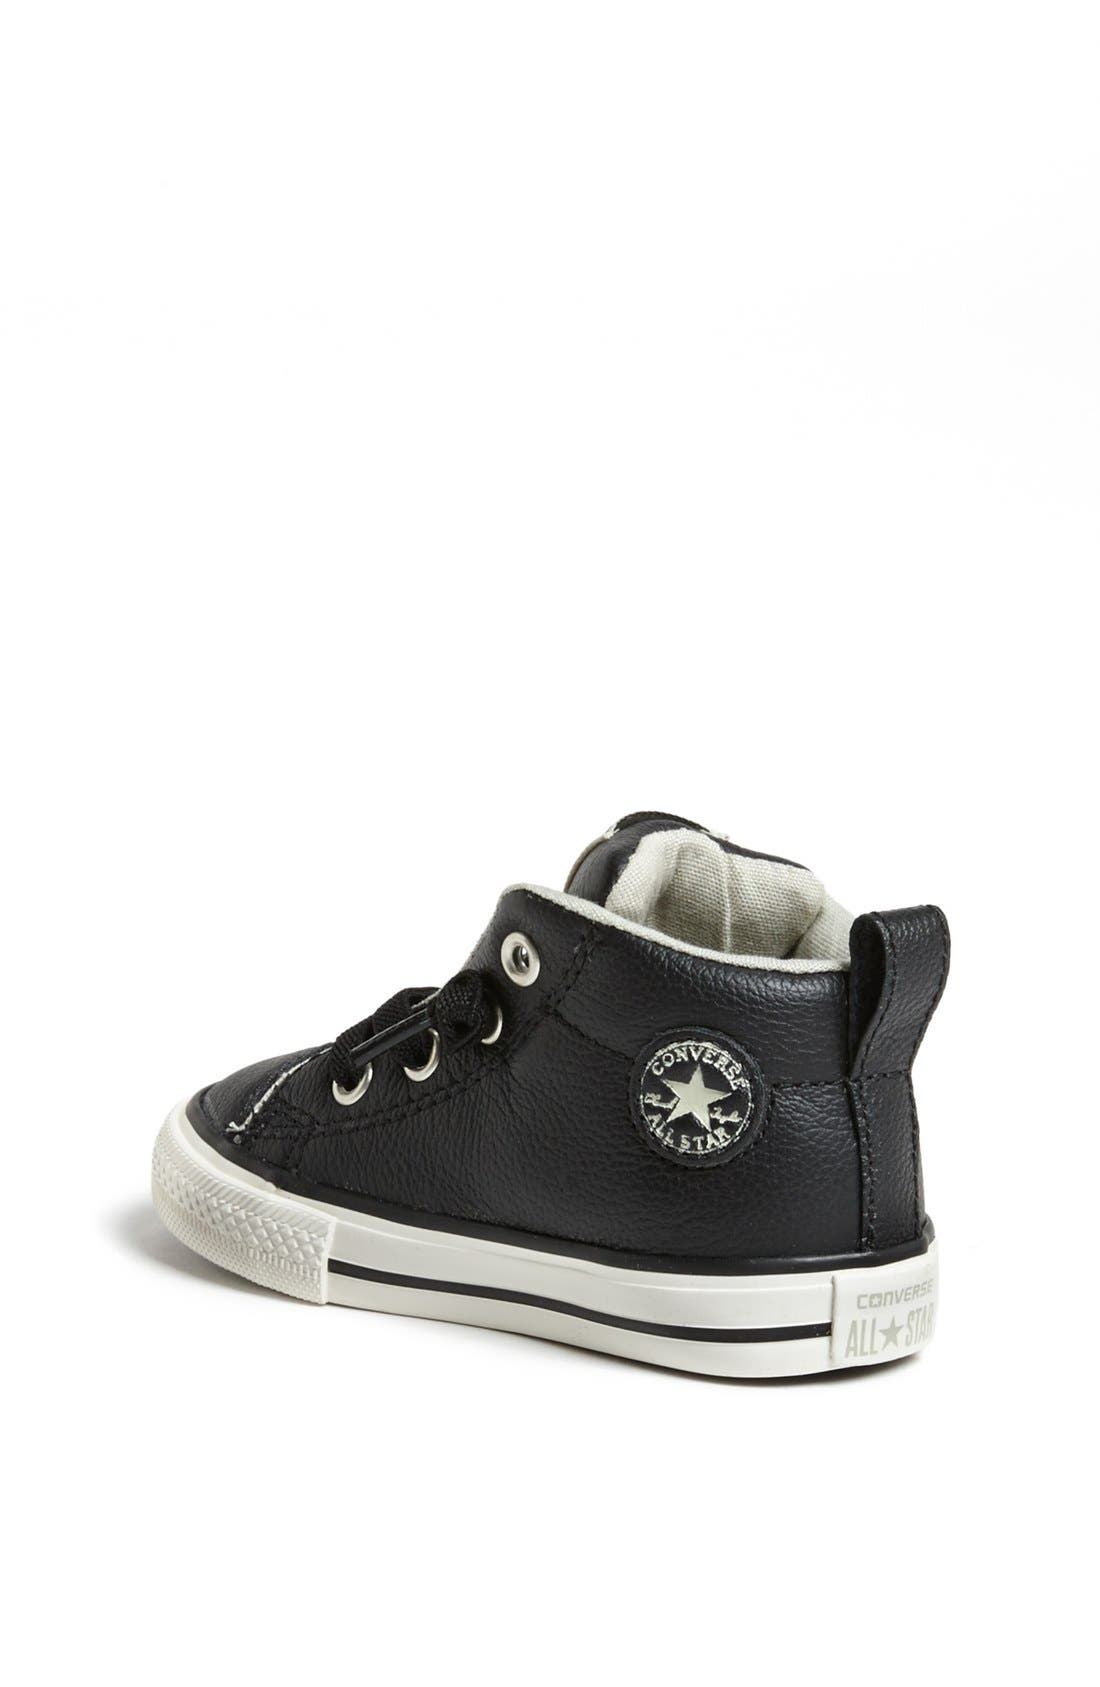 Chuck Taylor<sup>®</sup> All Star<sup>®</sup> 'CT AS Street' Leather Slip-On Sneaker,                             Alternate thumbnail 2, color,                             Black/ Tidal Foam